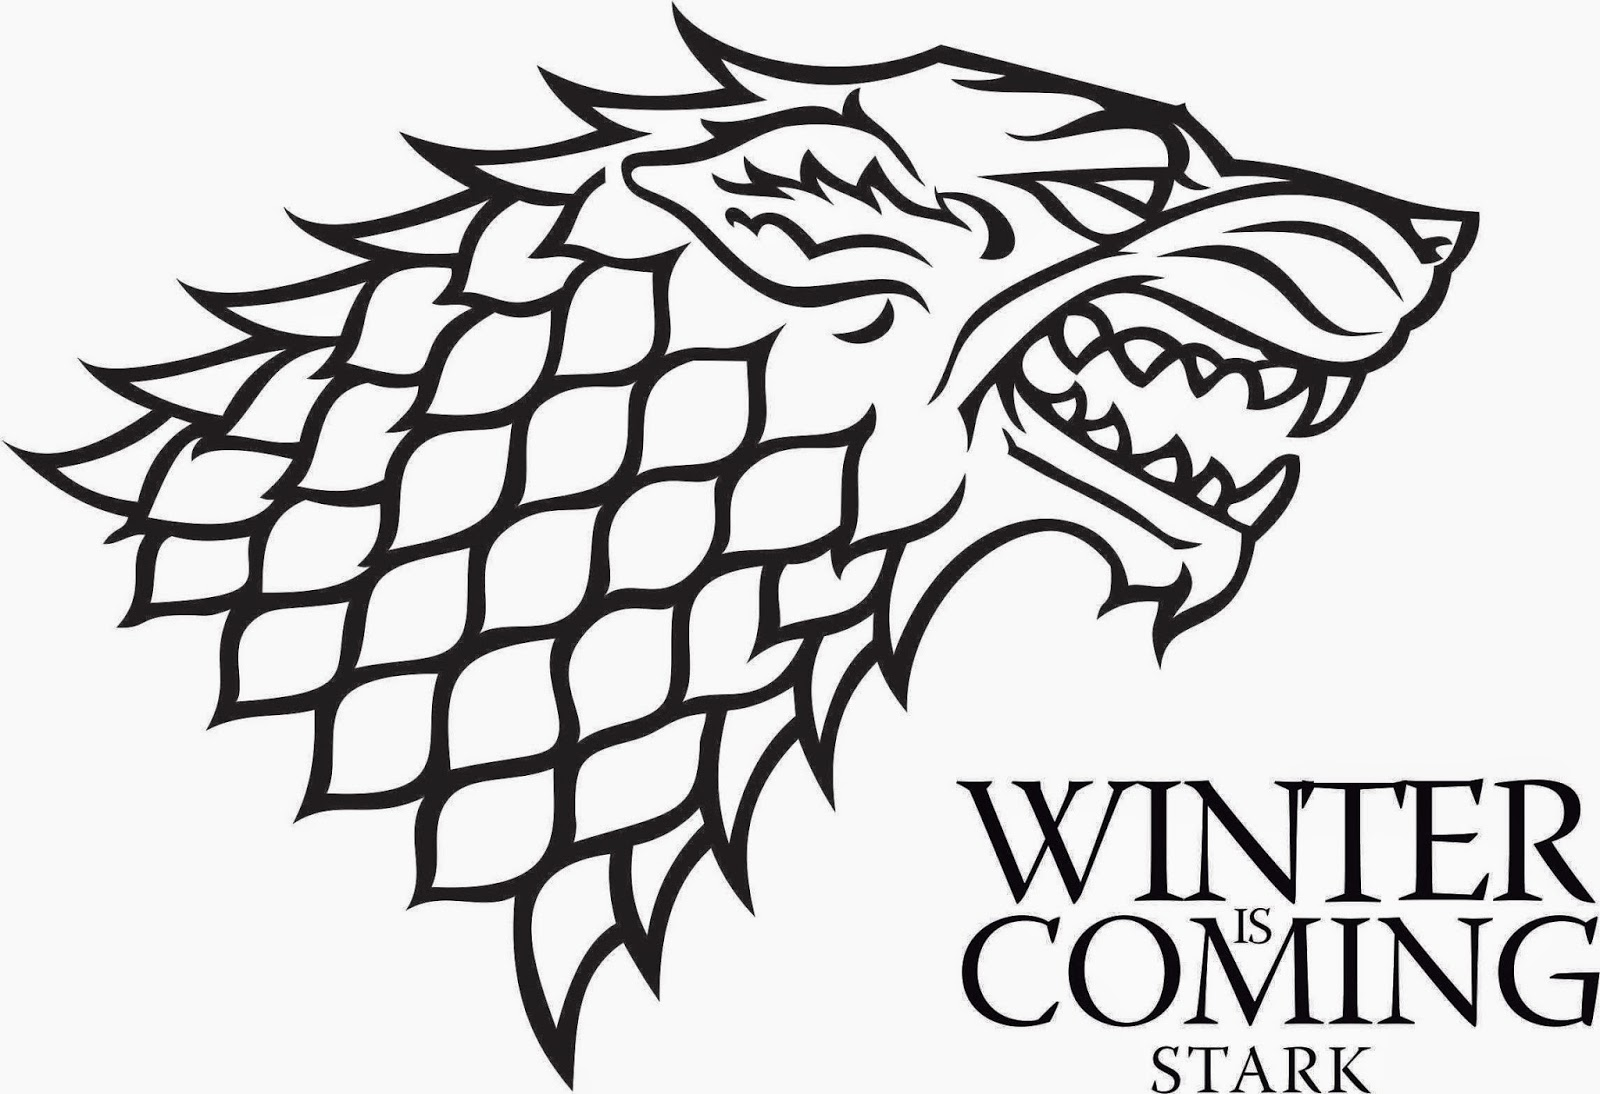 AldLogos: logo Game of thrones vectorizado